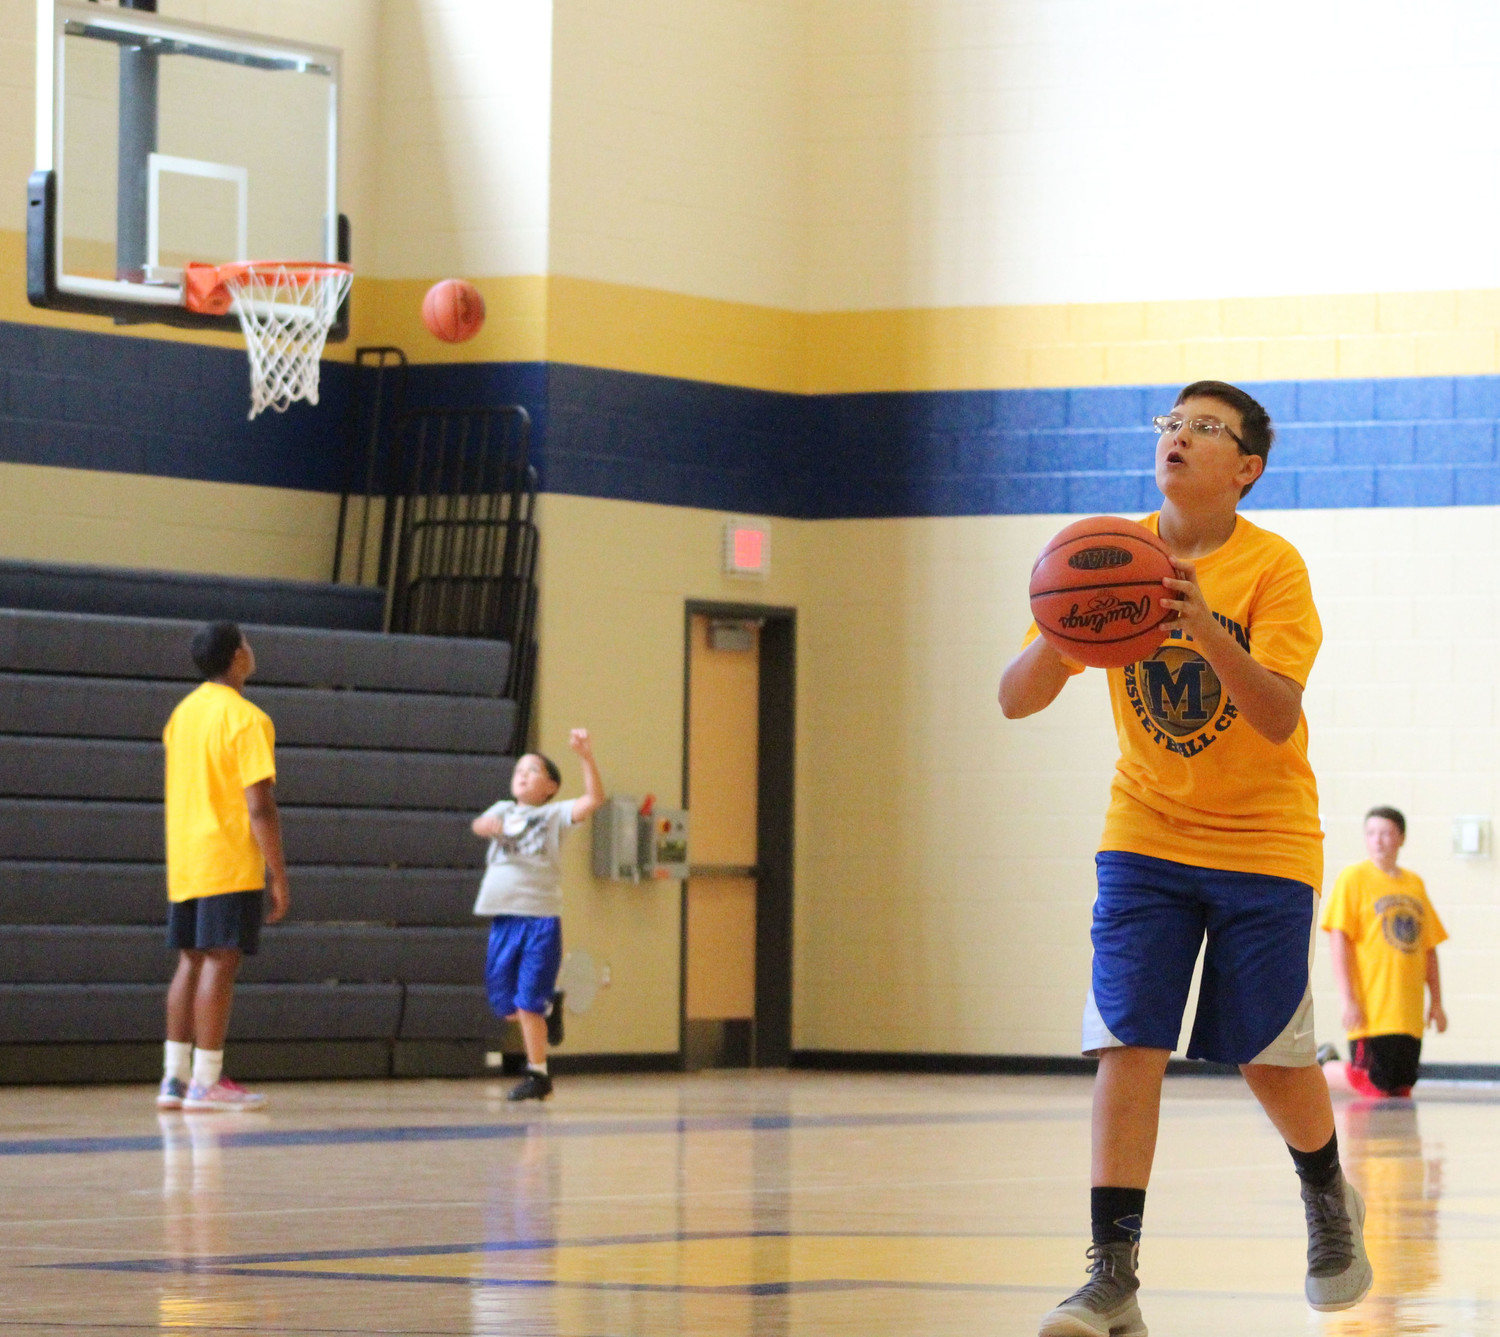 RJ Romboc shoots a three pointer during basketball camp on July 12.